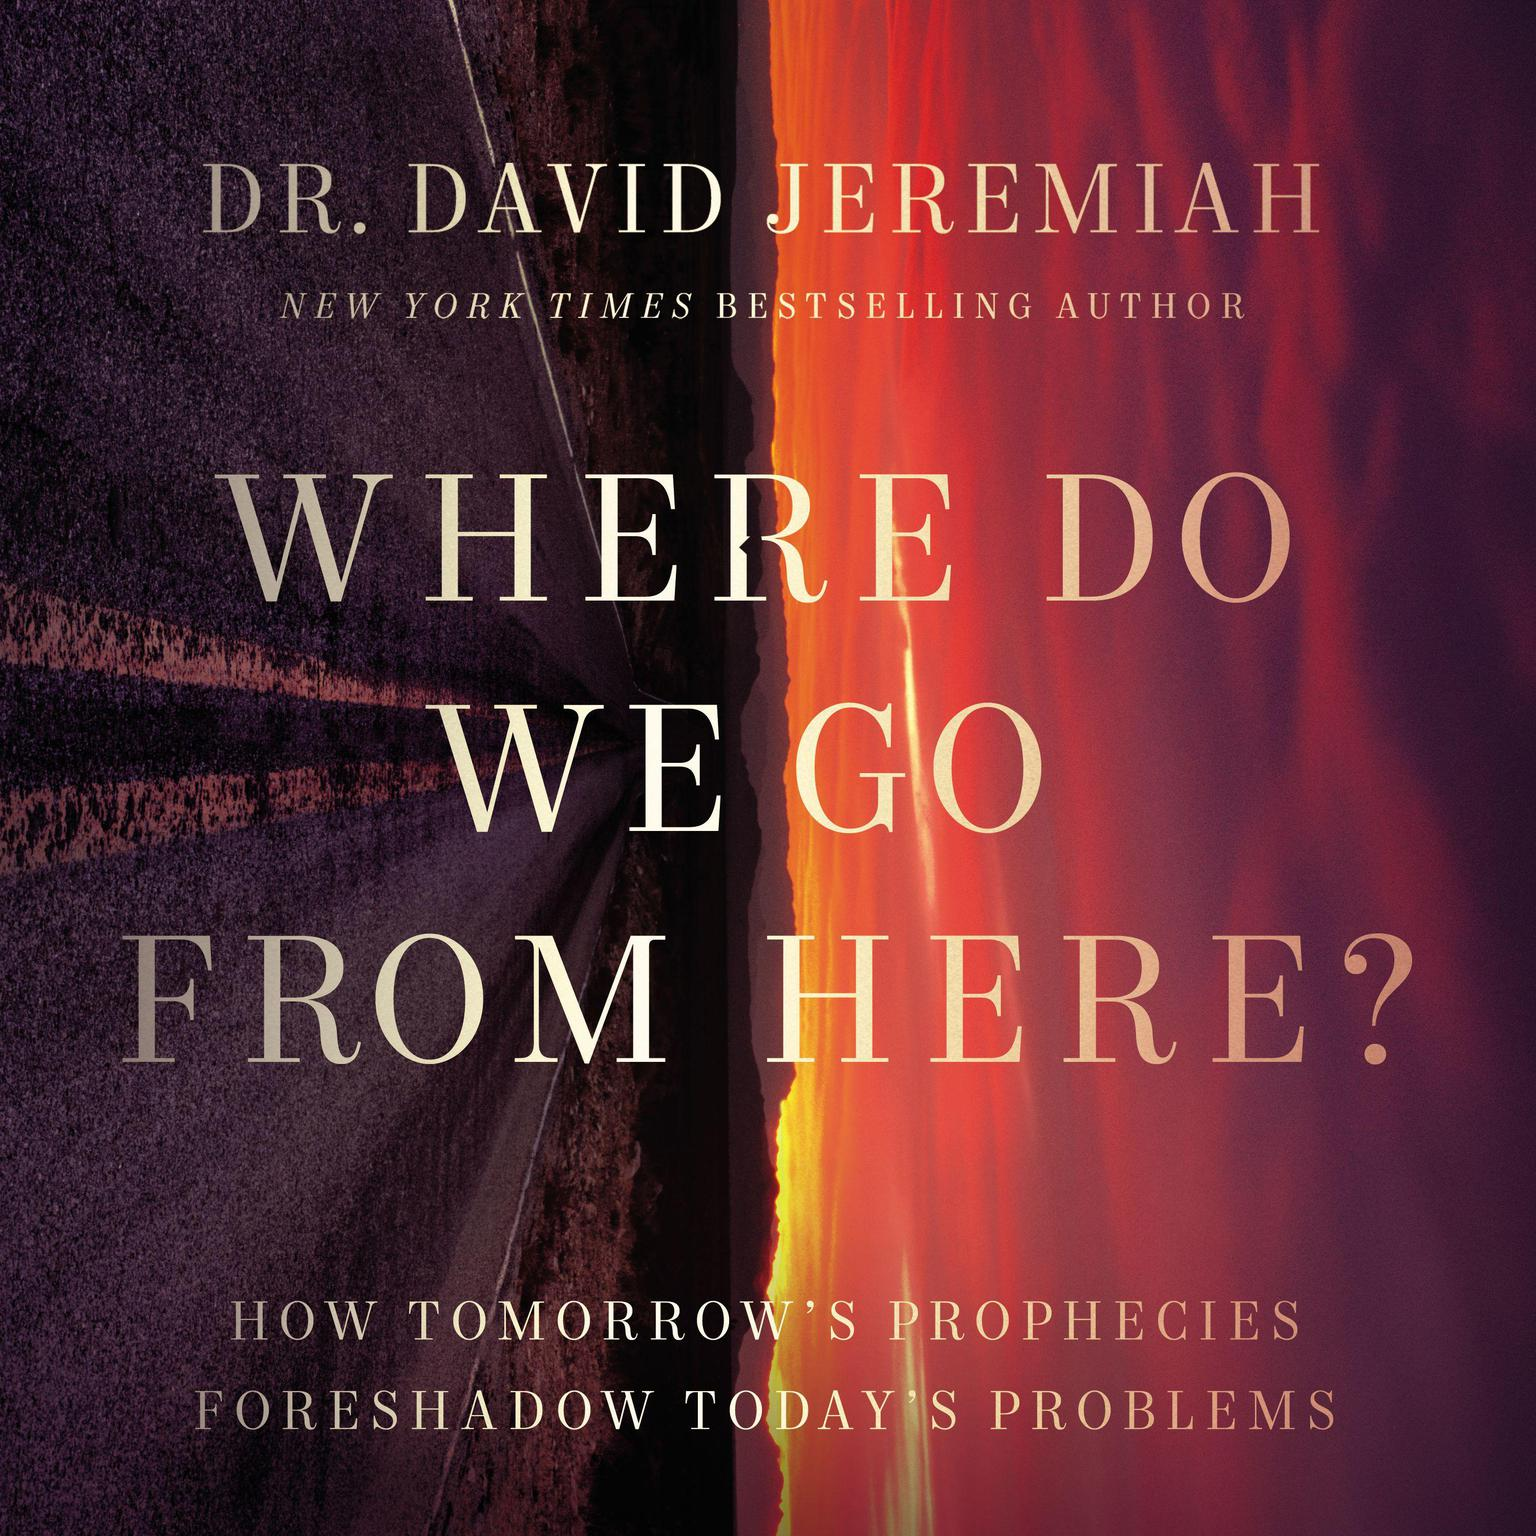 Where Do We Go from Here?: How Tomorrow's Prophecies Foreshadow Today's Problems Audiobook, by David Jeremiah